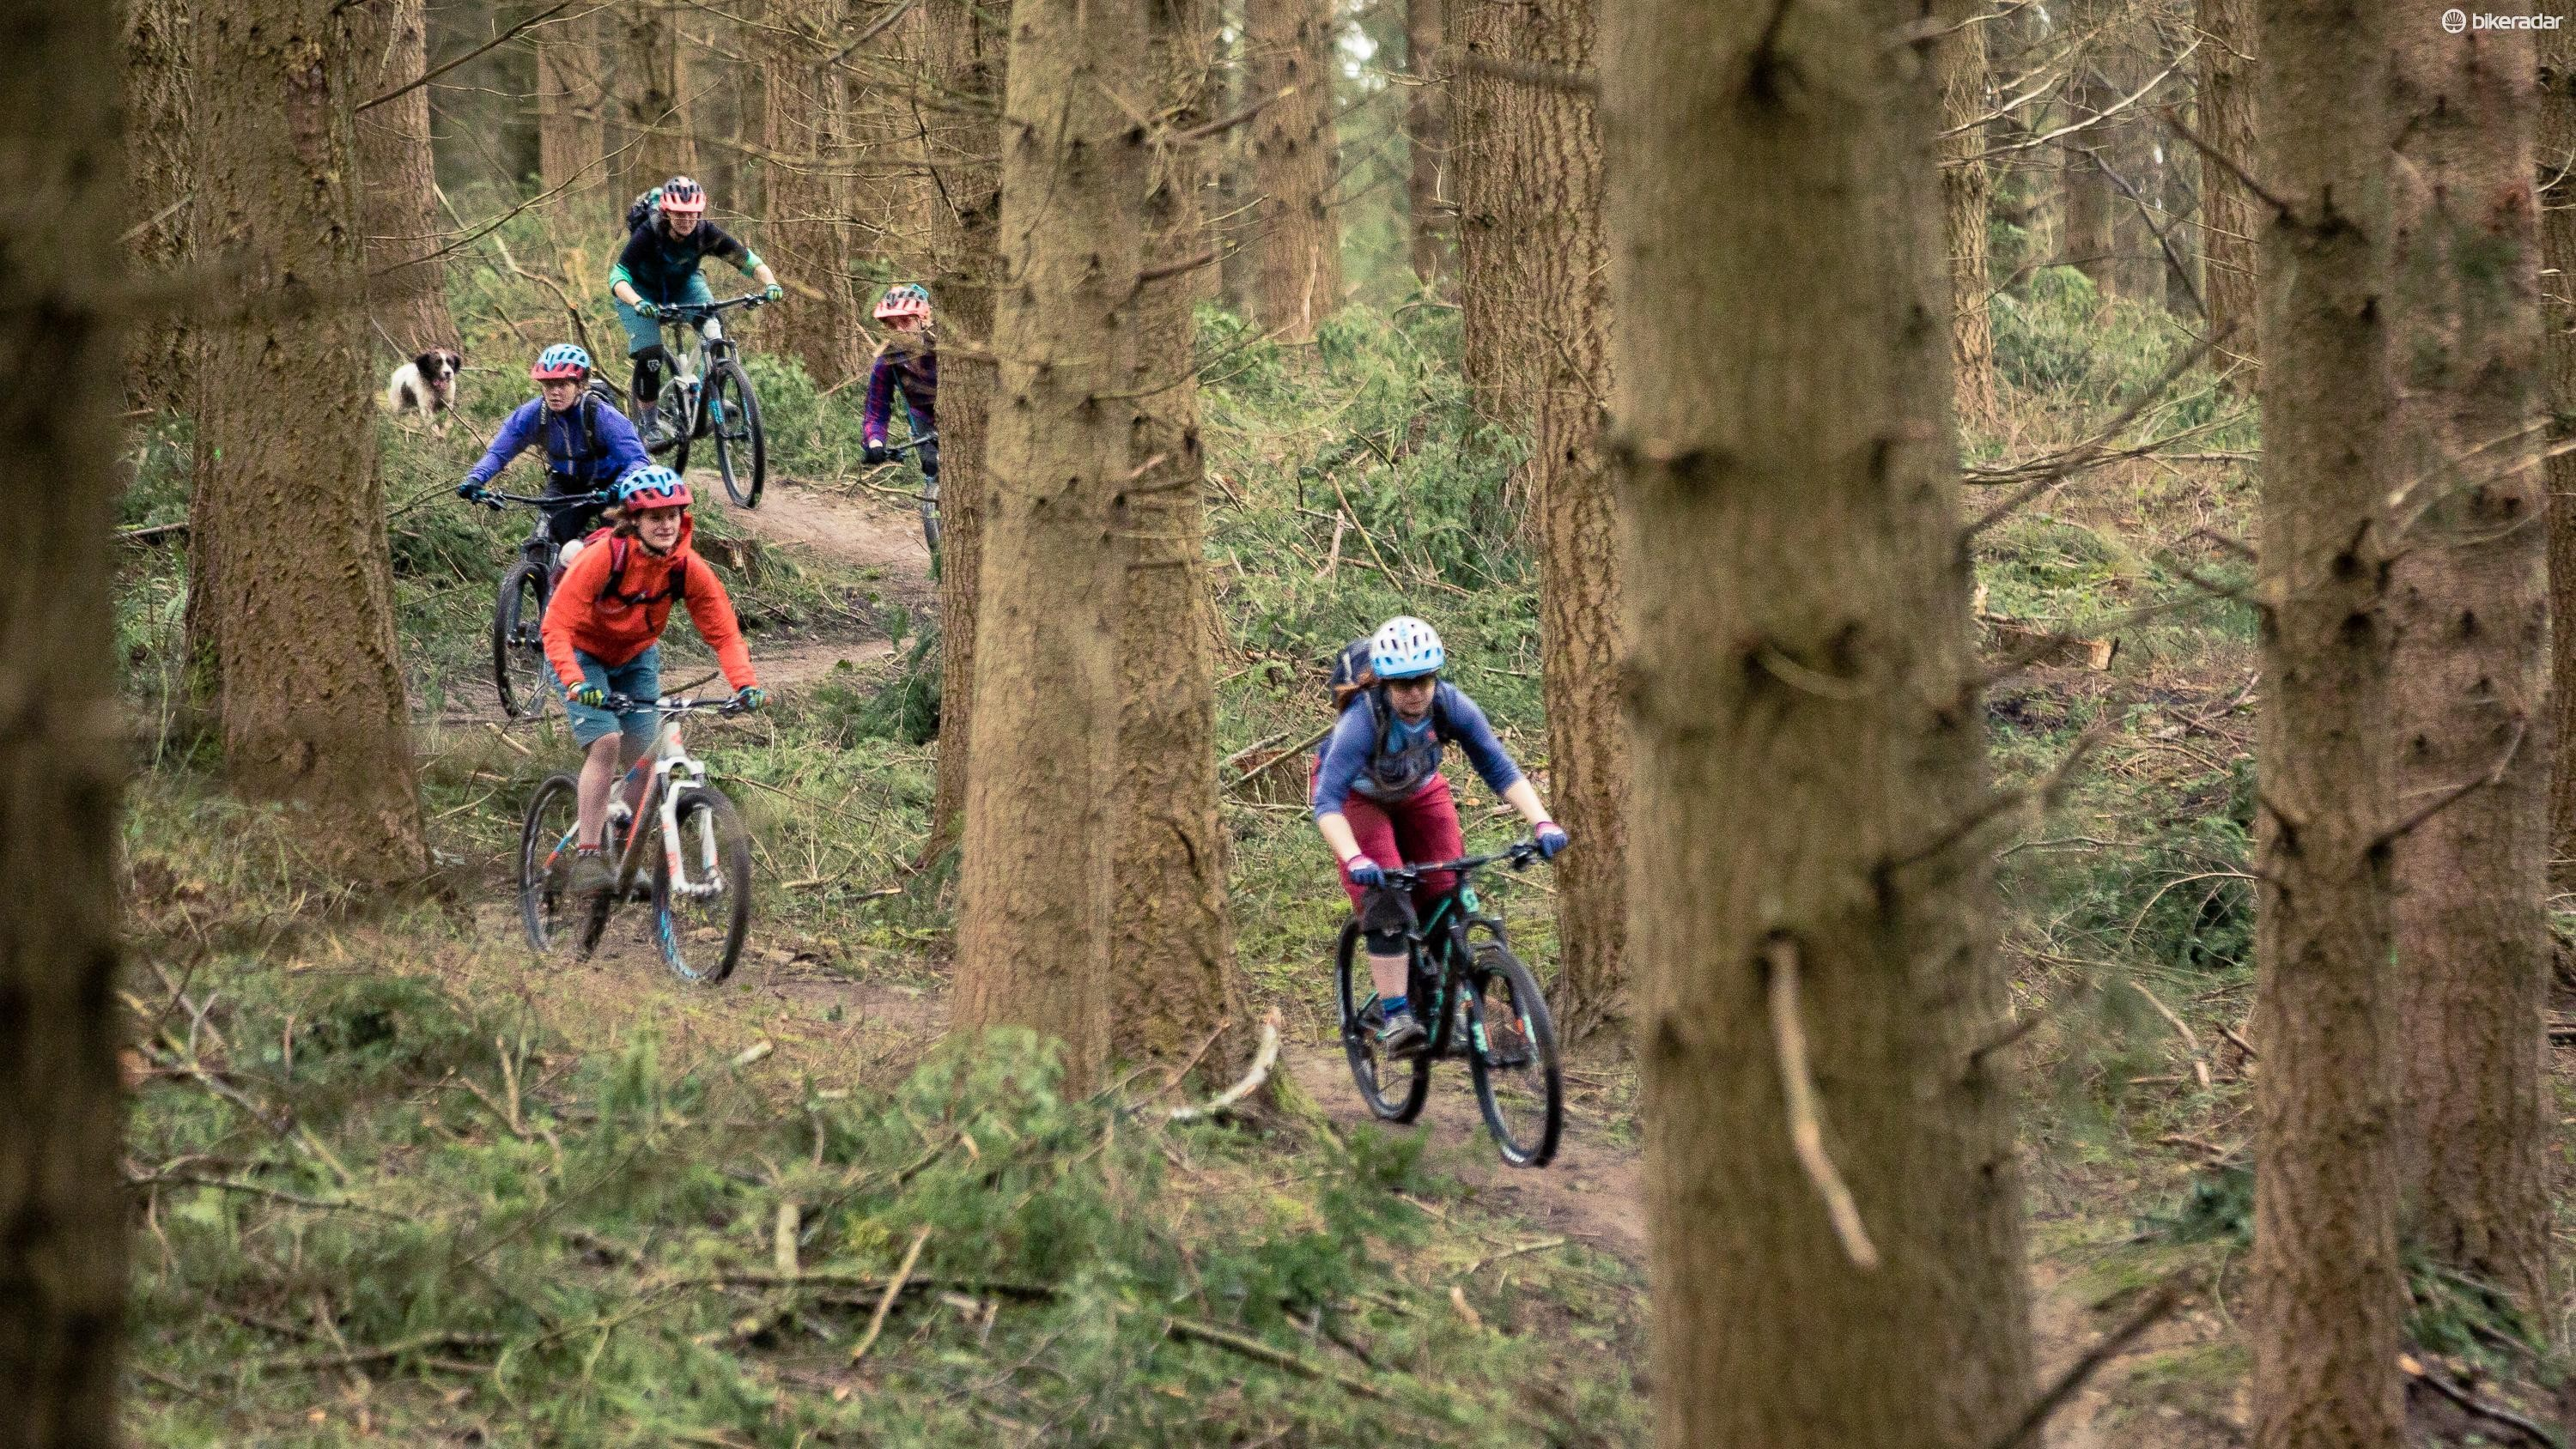 Our buyer's guide to women's mountain bikes will help you find the right bike for you